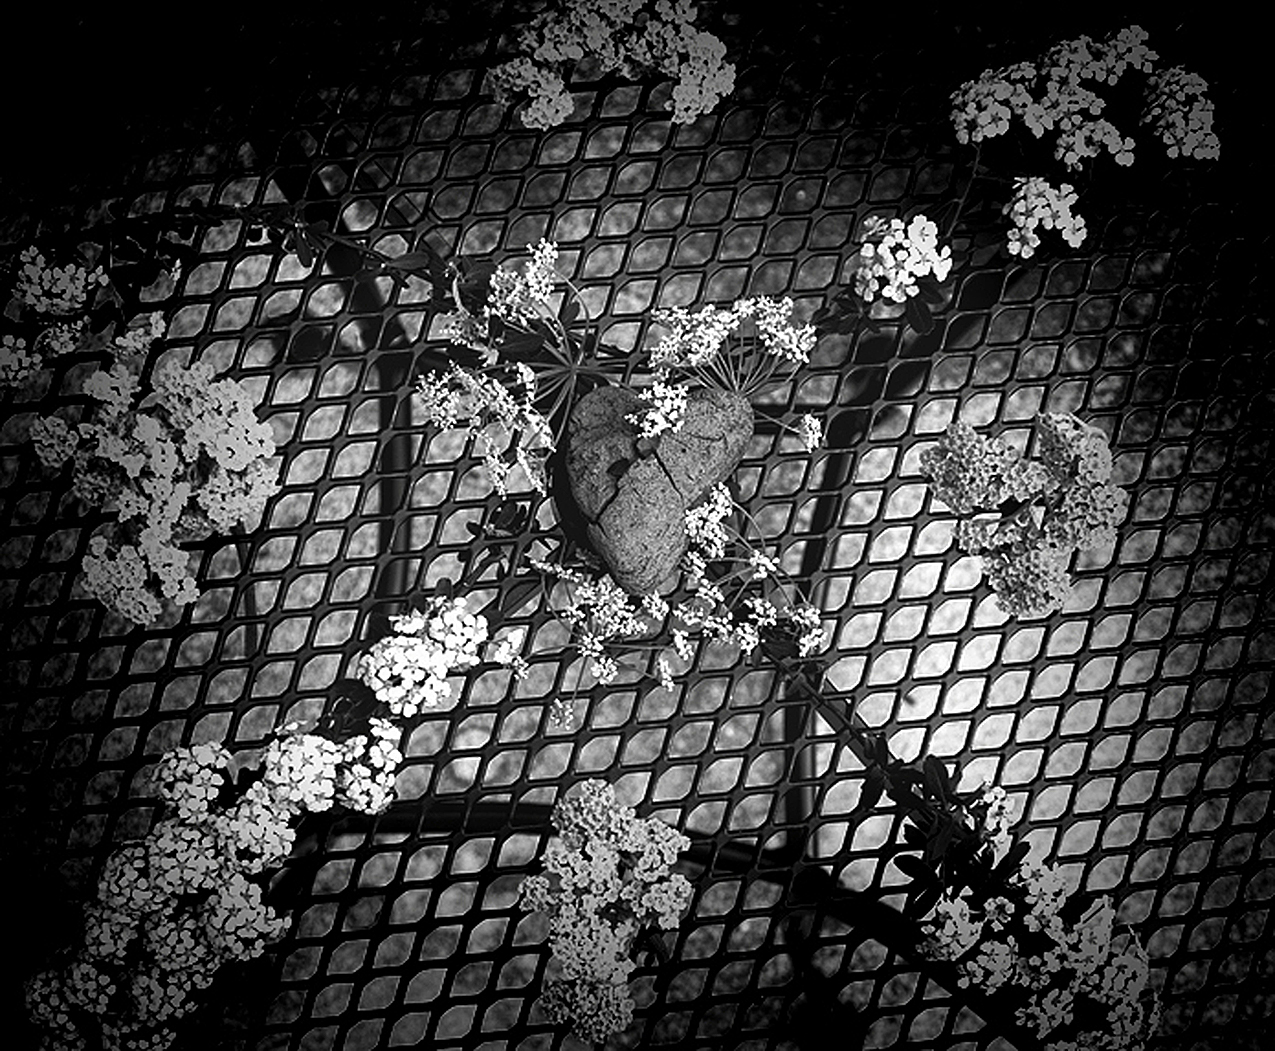 black and white photo of a heart shaped rock sitting on a grate with delicate white flowers